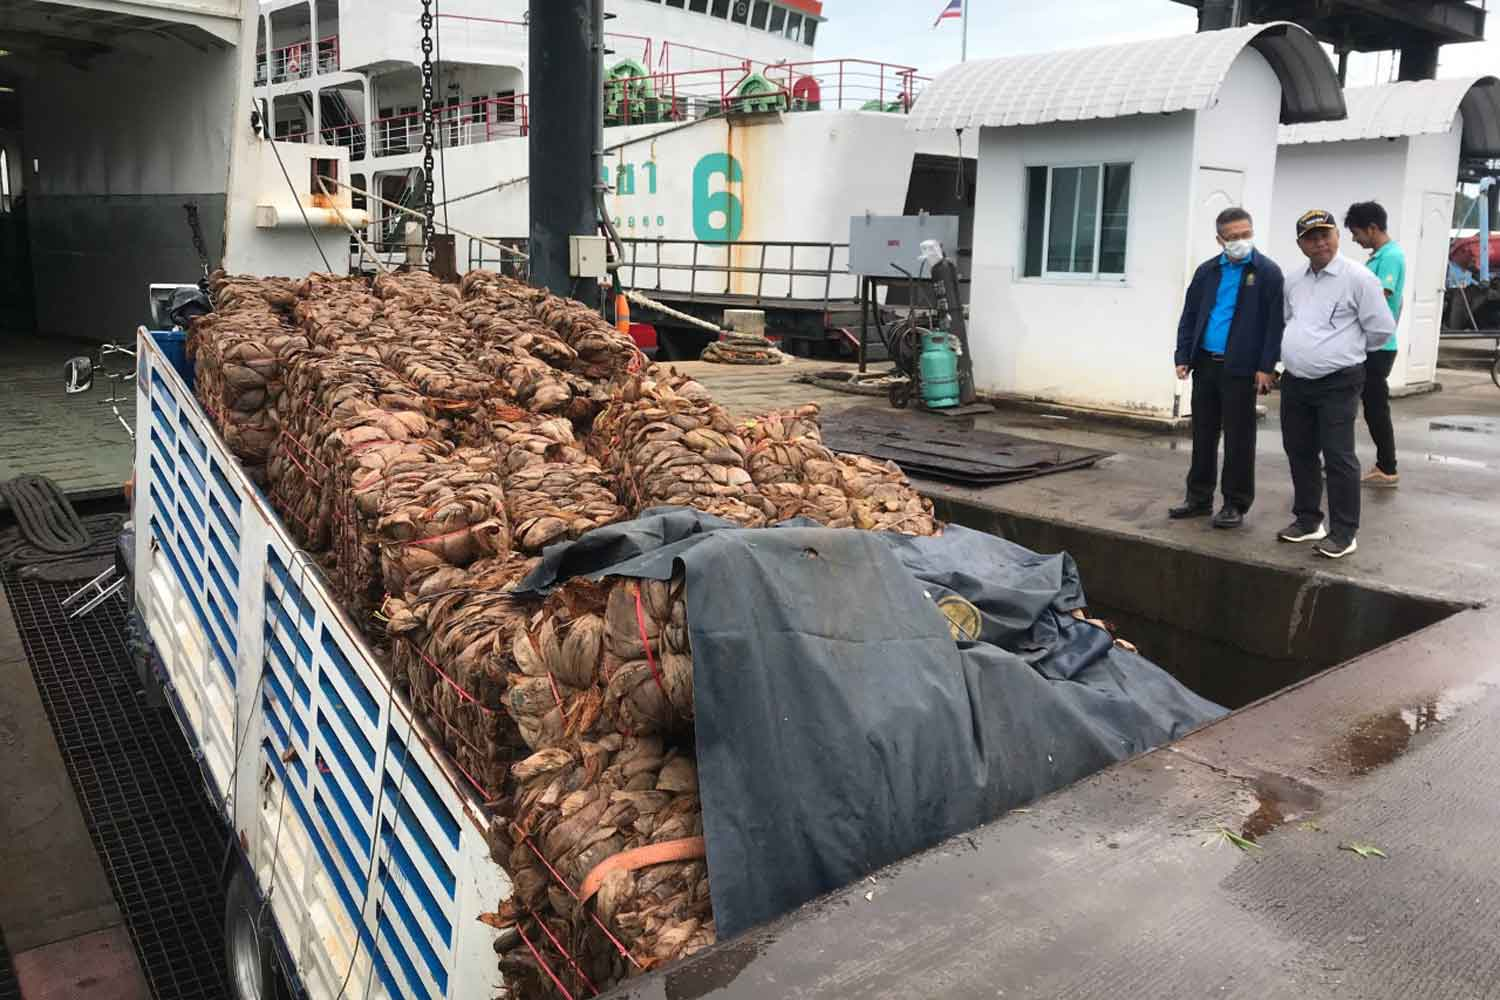 A truck loaded with coconut husks wedged under the wharf at Raja 1 ferry pier on Koh Samui after the boarding bridge collapsed on Tuesday morning. (Photo: Supapong Chaolan)